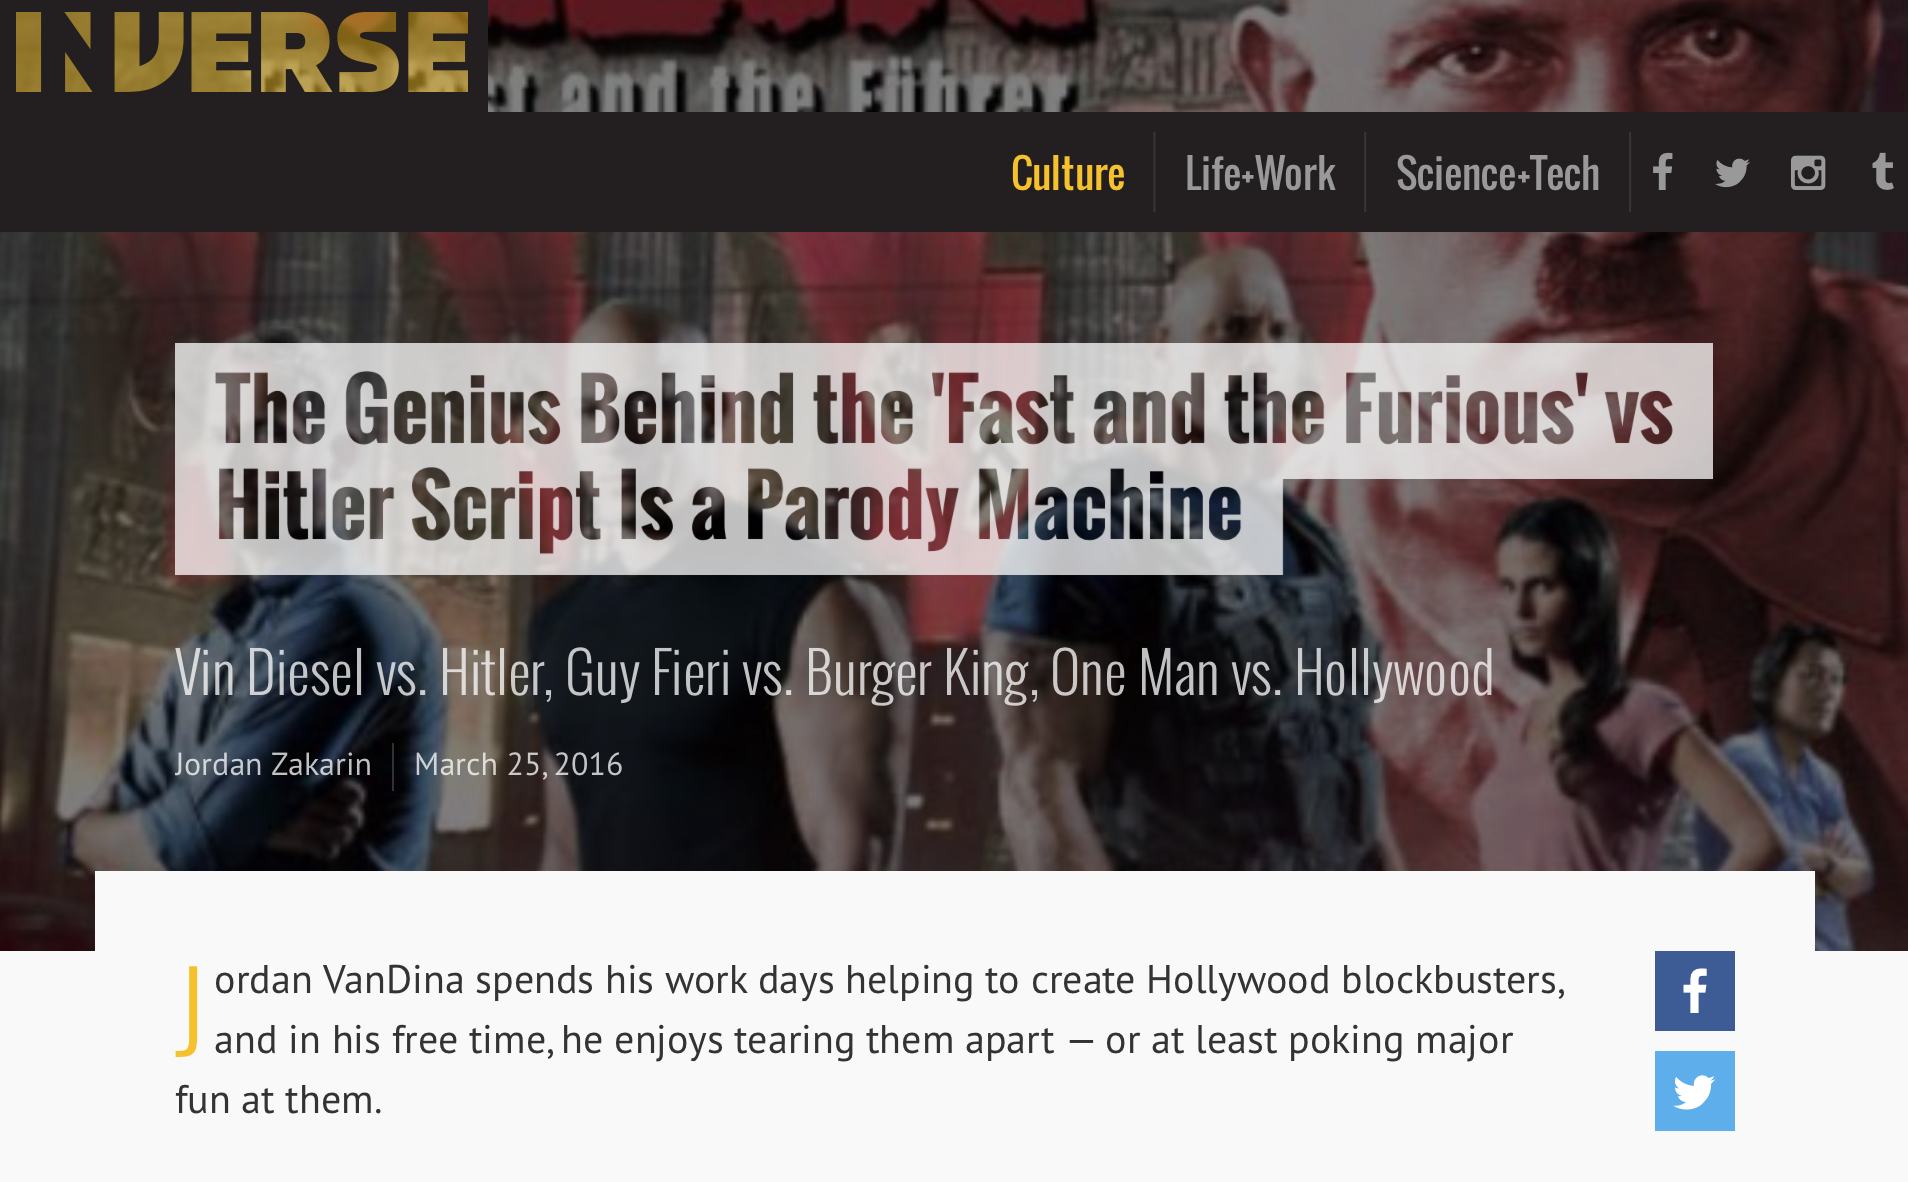 https://www.inverse.com/article/13316-the-genius-behind-the-fast-and-the-furious-vs-hitler-script-is-a-parody-machine